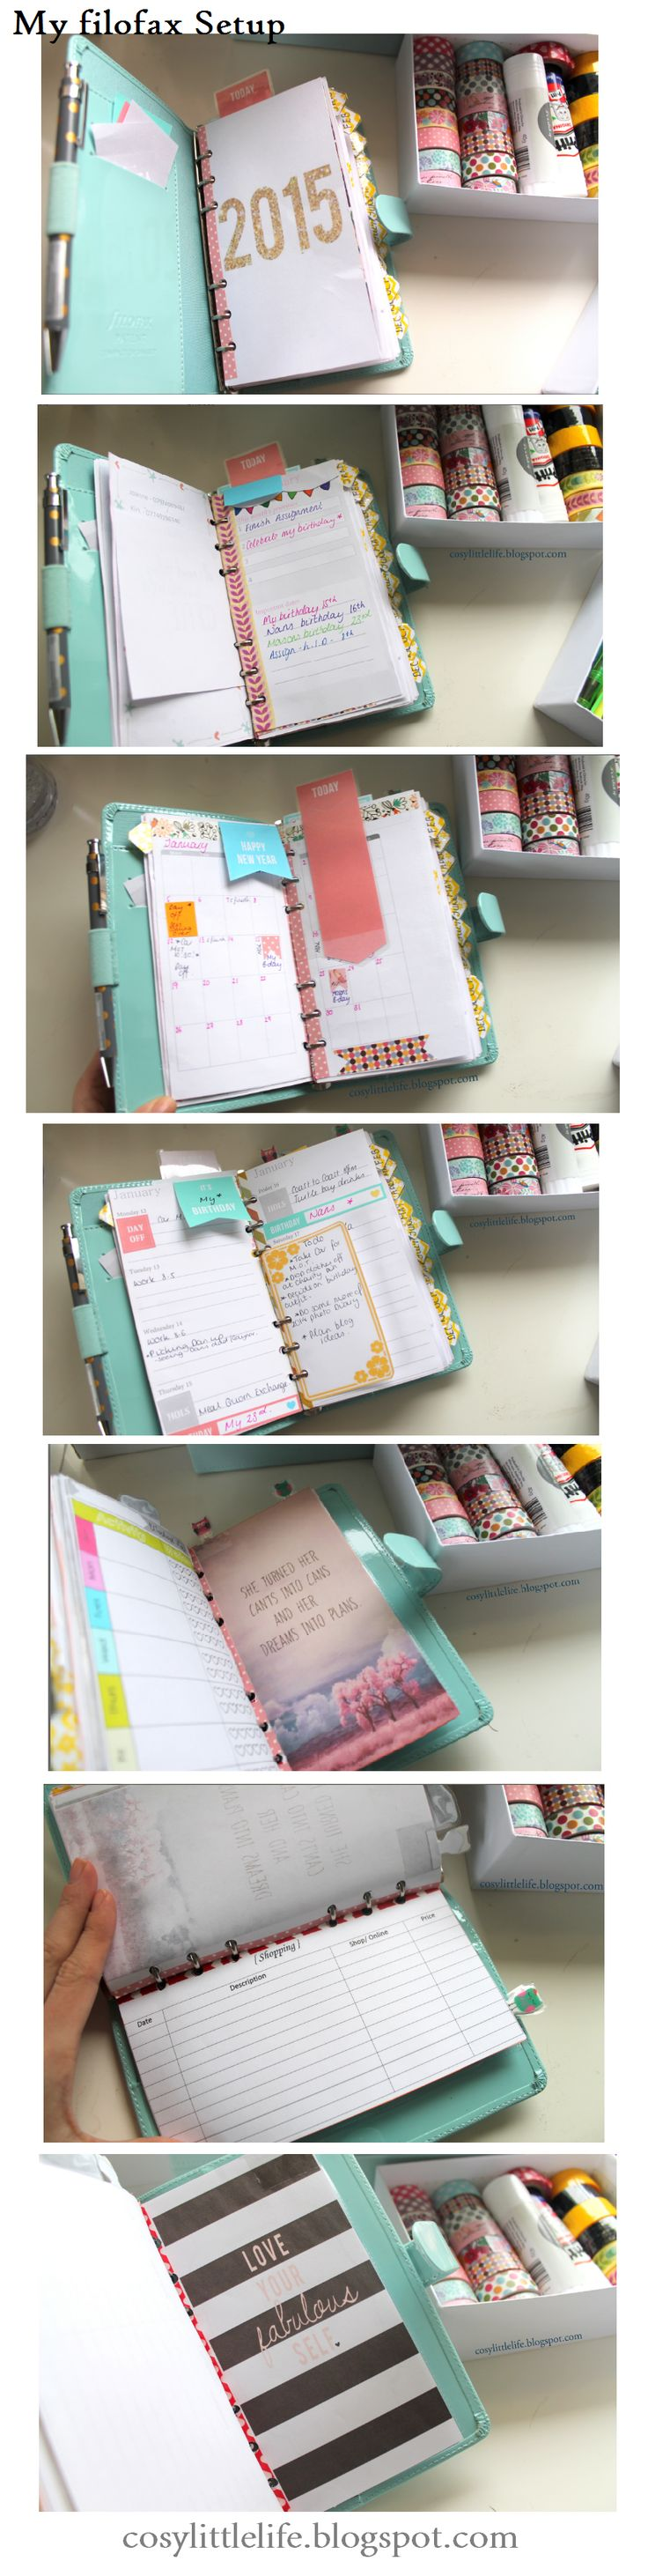 My Filofax Setup. Check out the blogpost at cosylittlelife.blogspot.com